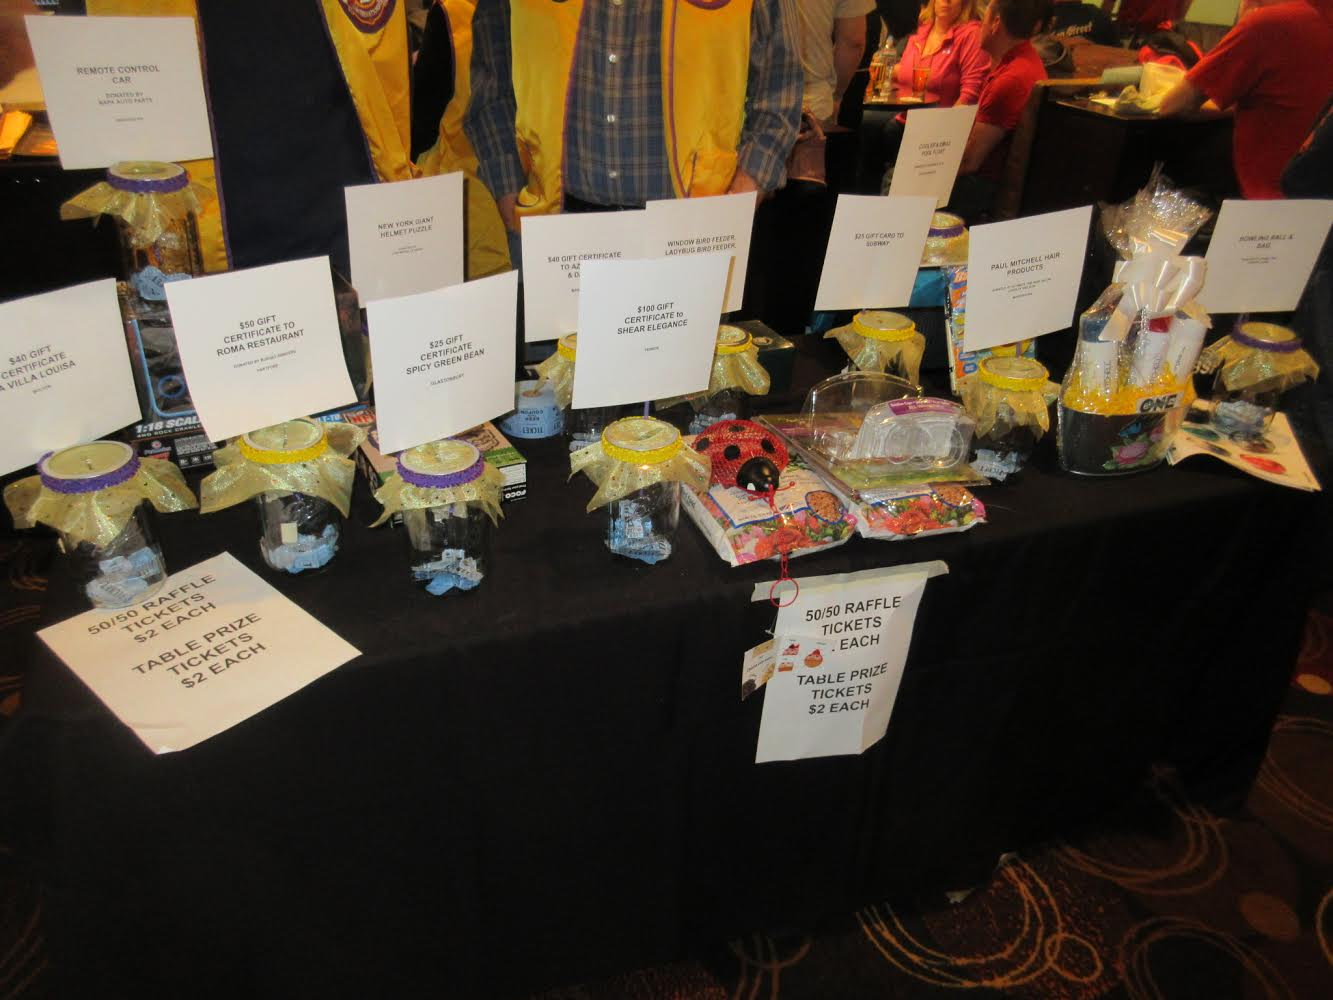 Every year we have tables full of prizes you can win-only $2 a ticket!